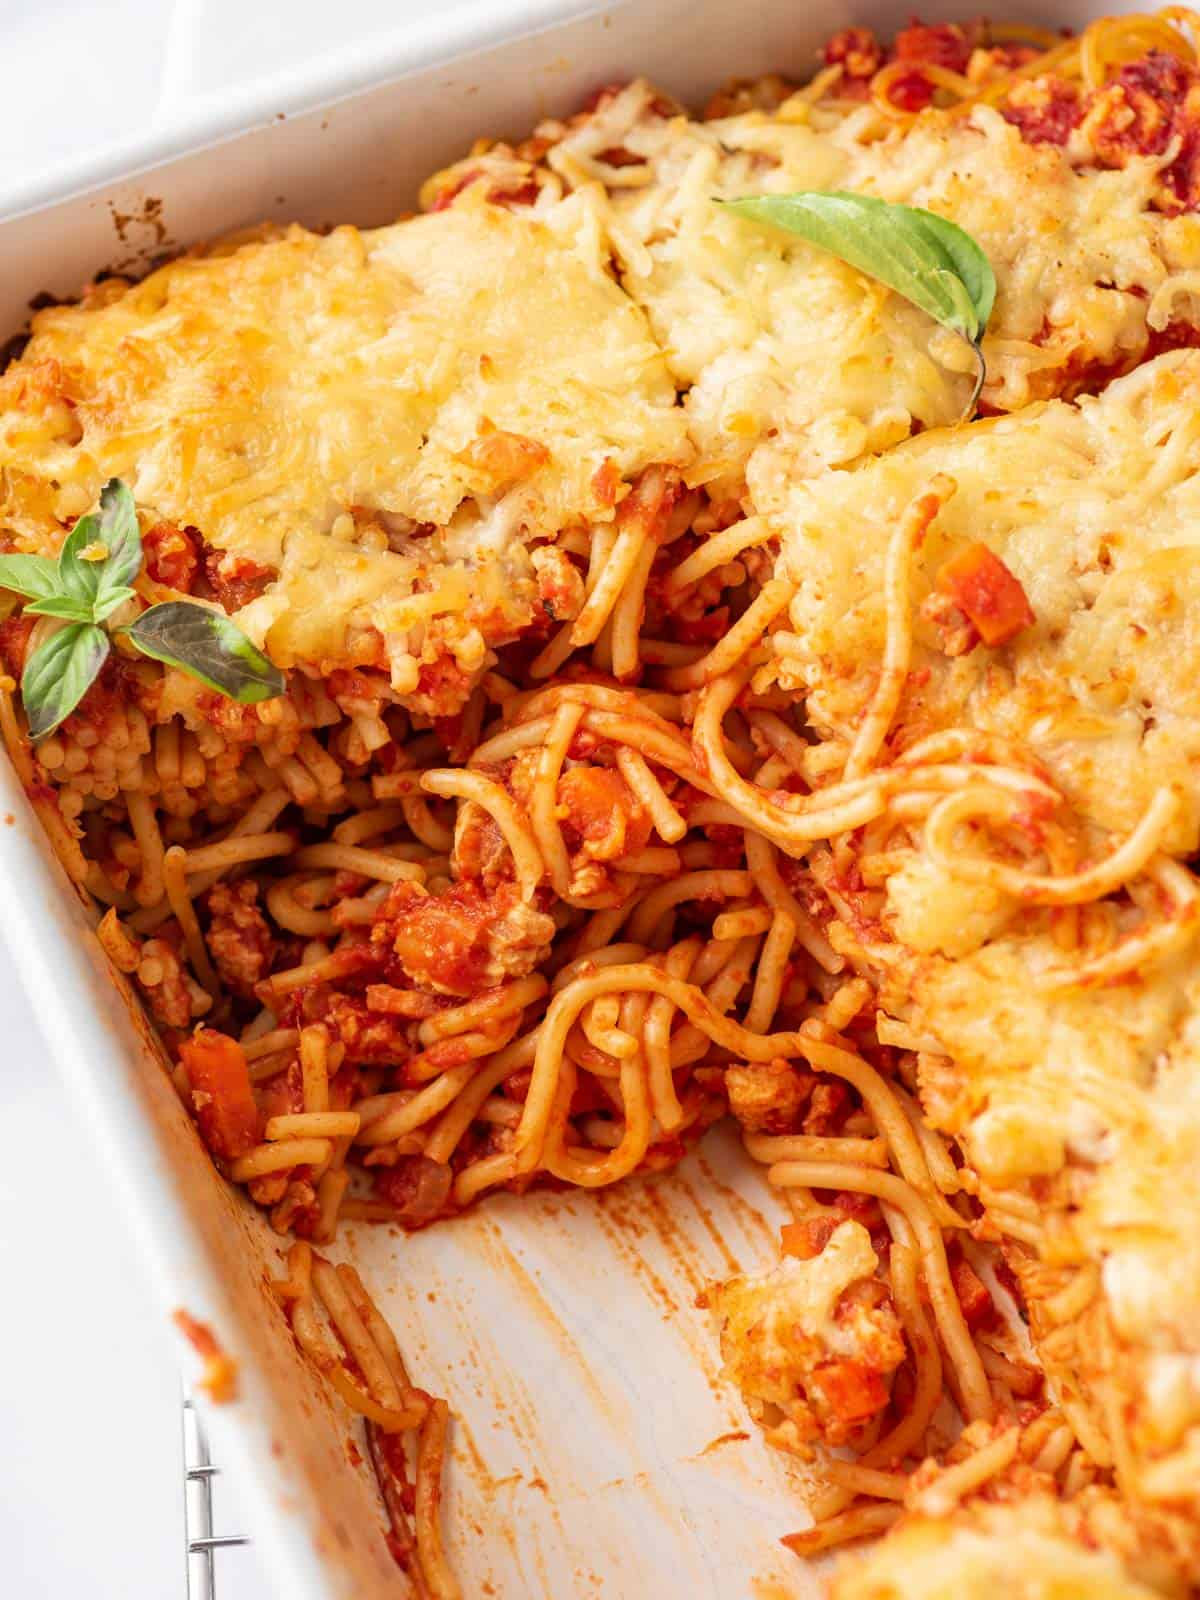 Easy Spaghetti Bake showing in the center in a dish